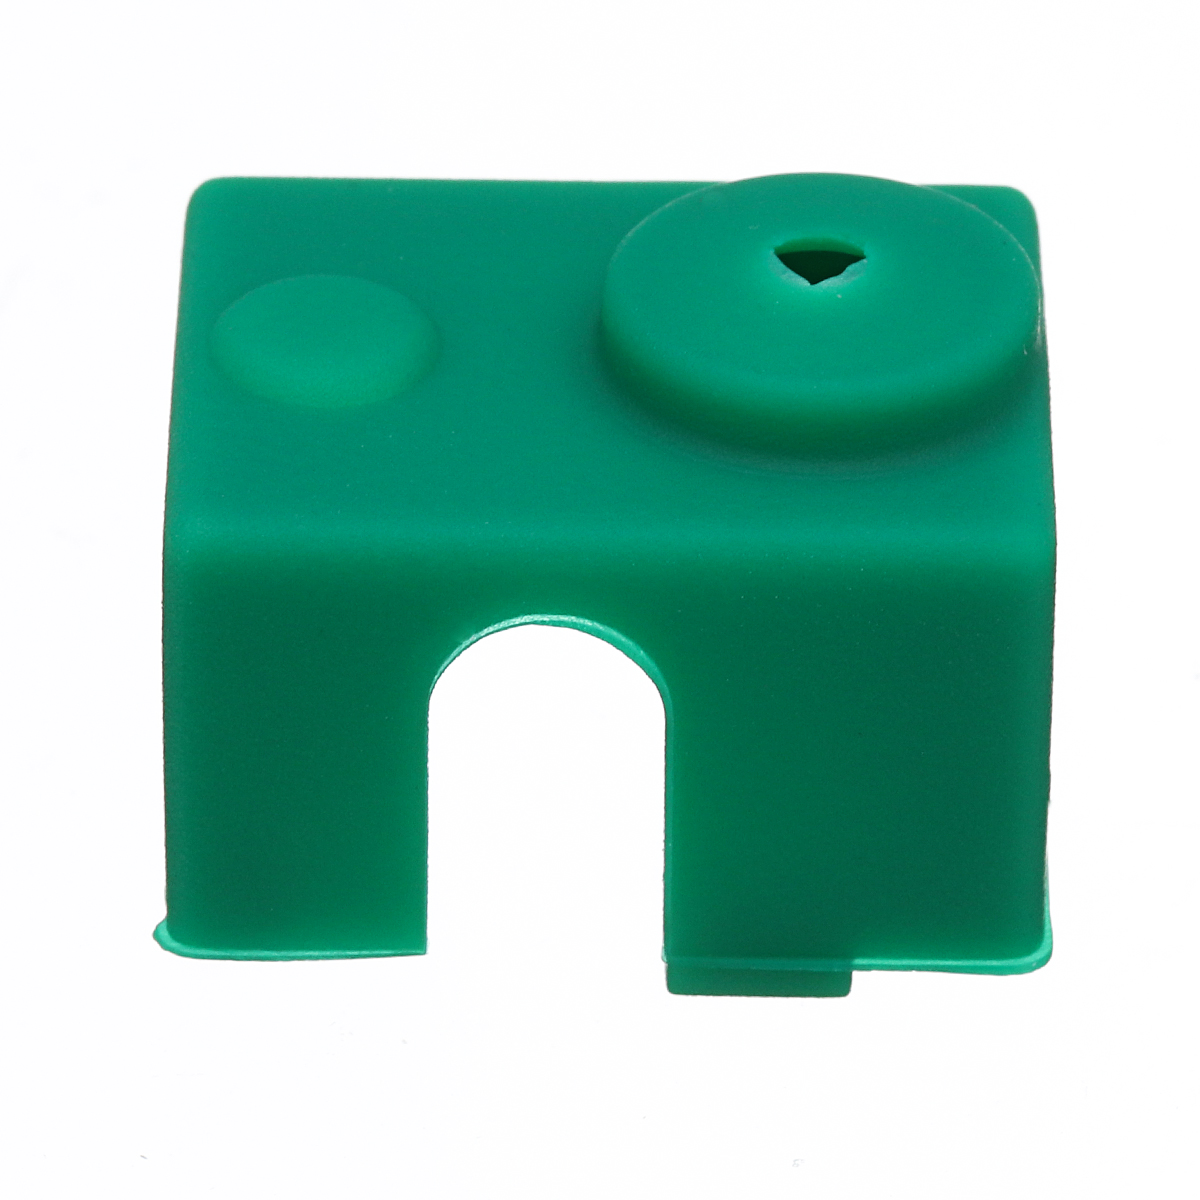 3Pcs Green Silicone Case For V6 Heater Block 3D Printer Parts